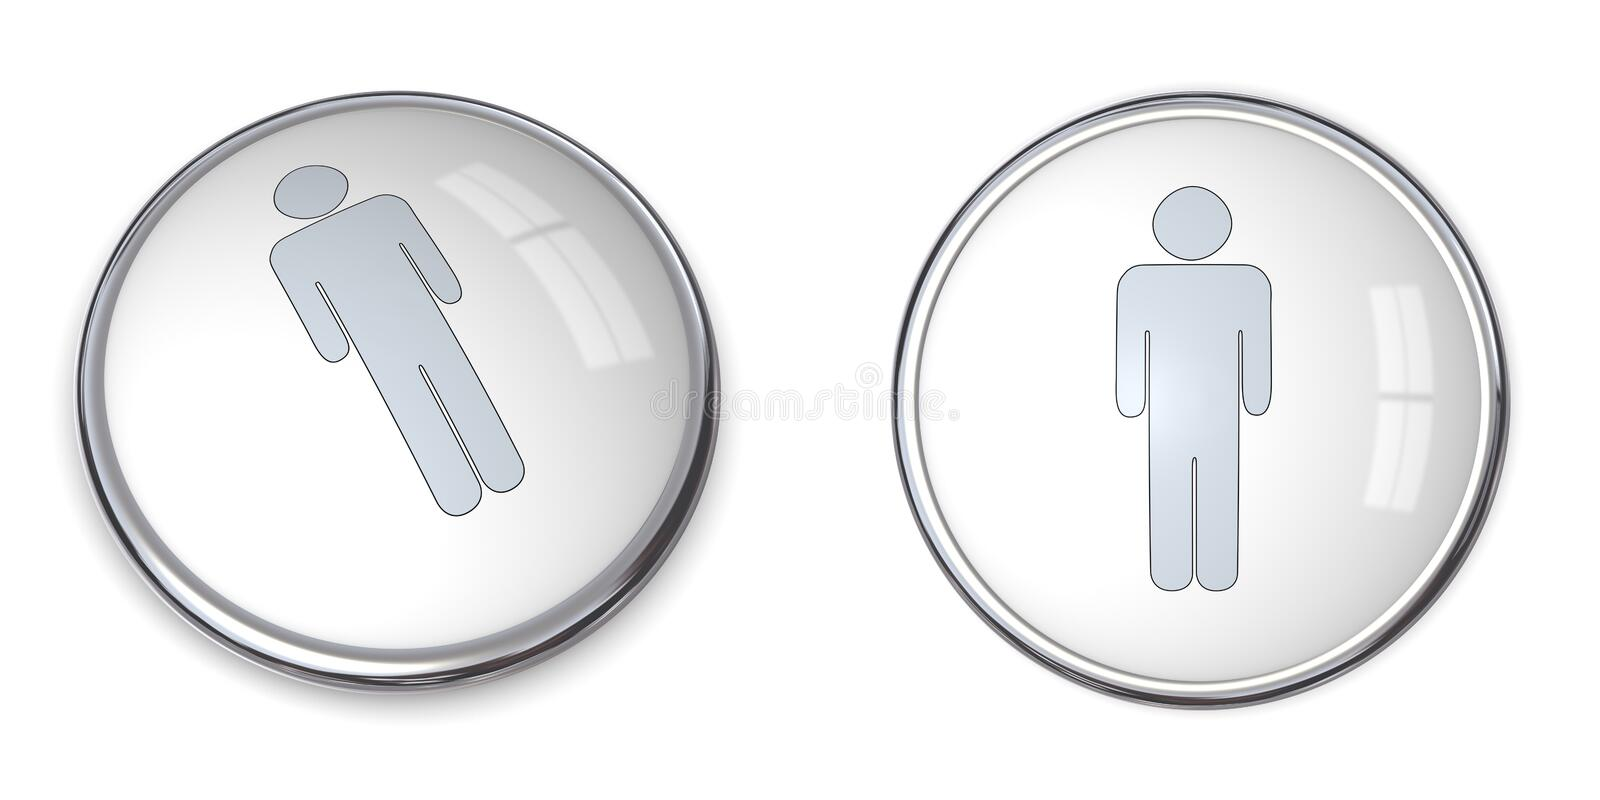 Download 3D Button Male Pictogram stock illustration. Image of pictogram - 9041322